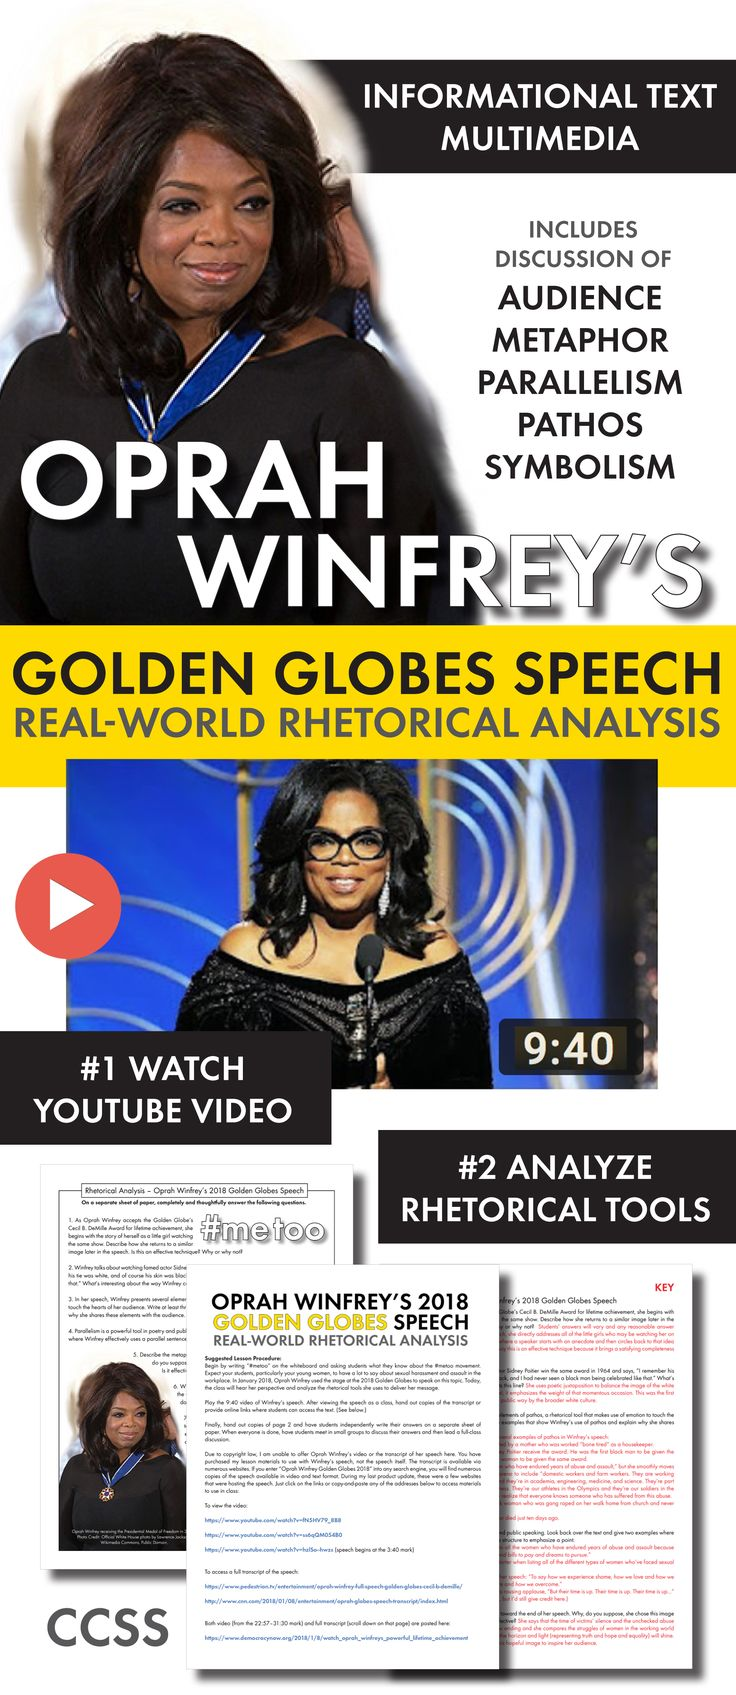 Use Oprah's Golden Globes speech as a high-interest lesson on rhetoric. Built for high school English classes.